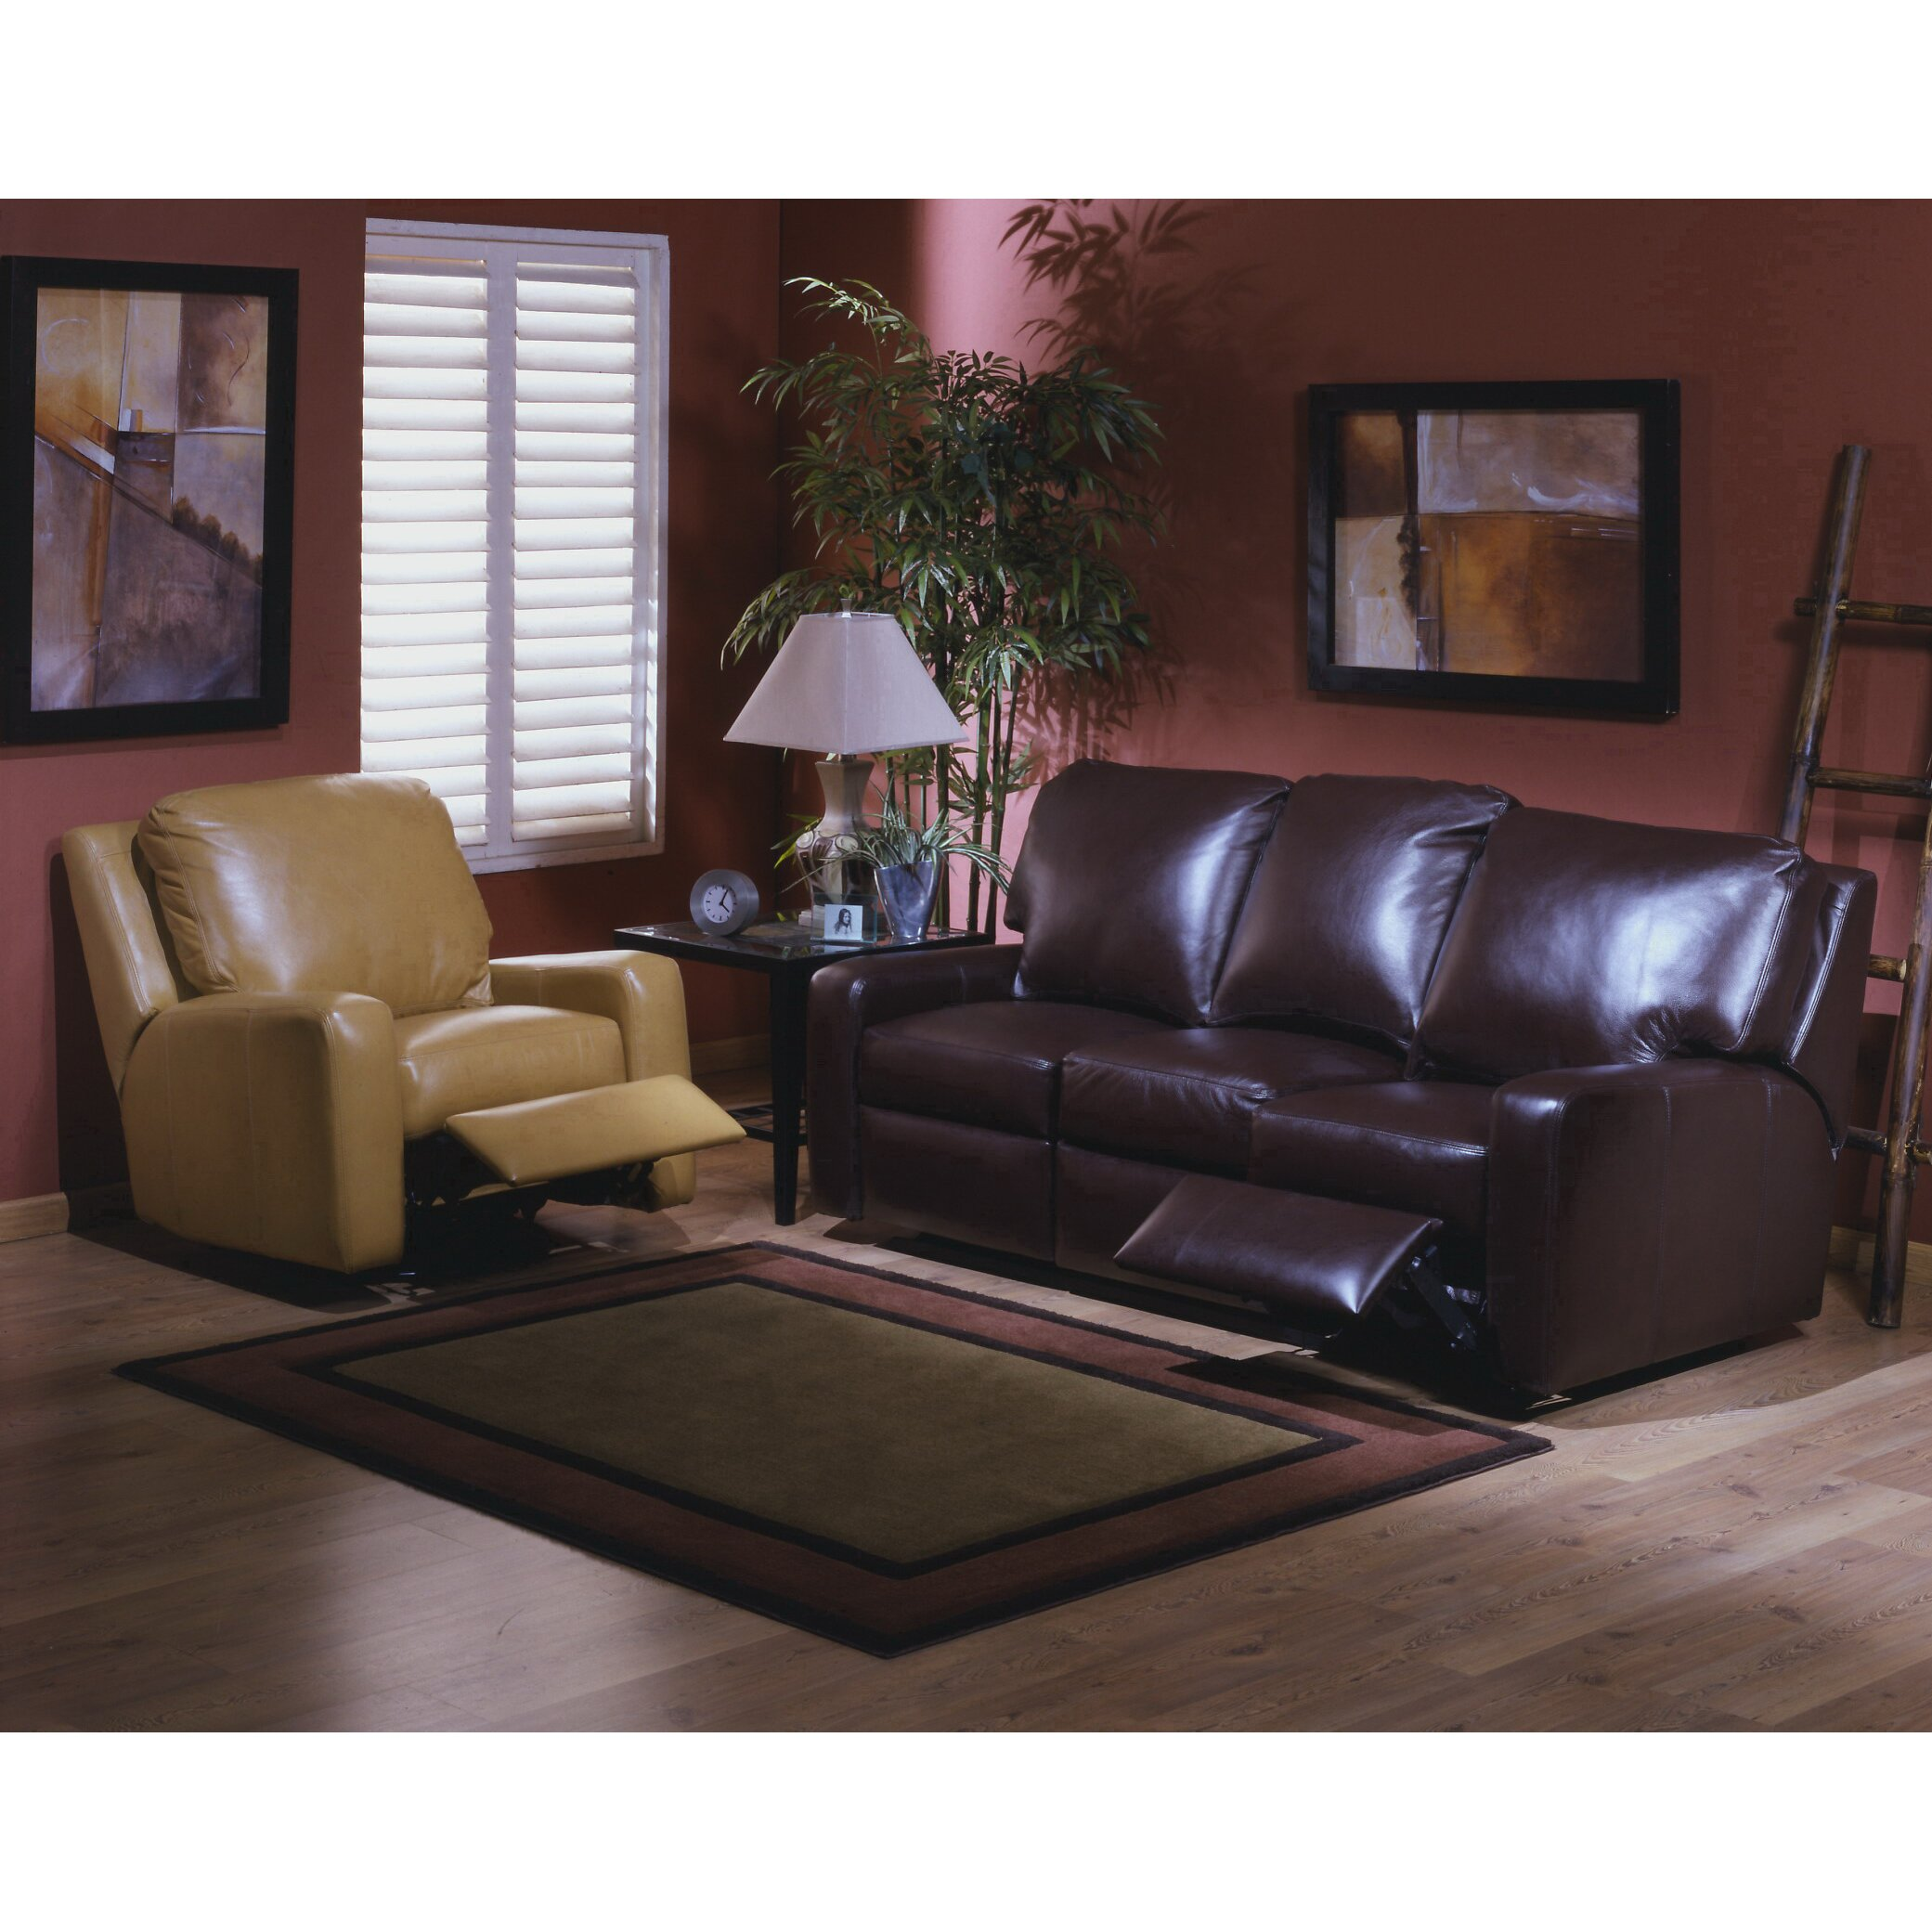 Omnia Leather Mirage Reclining Leather Living Room Set